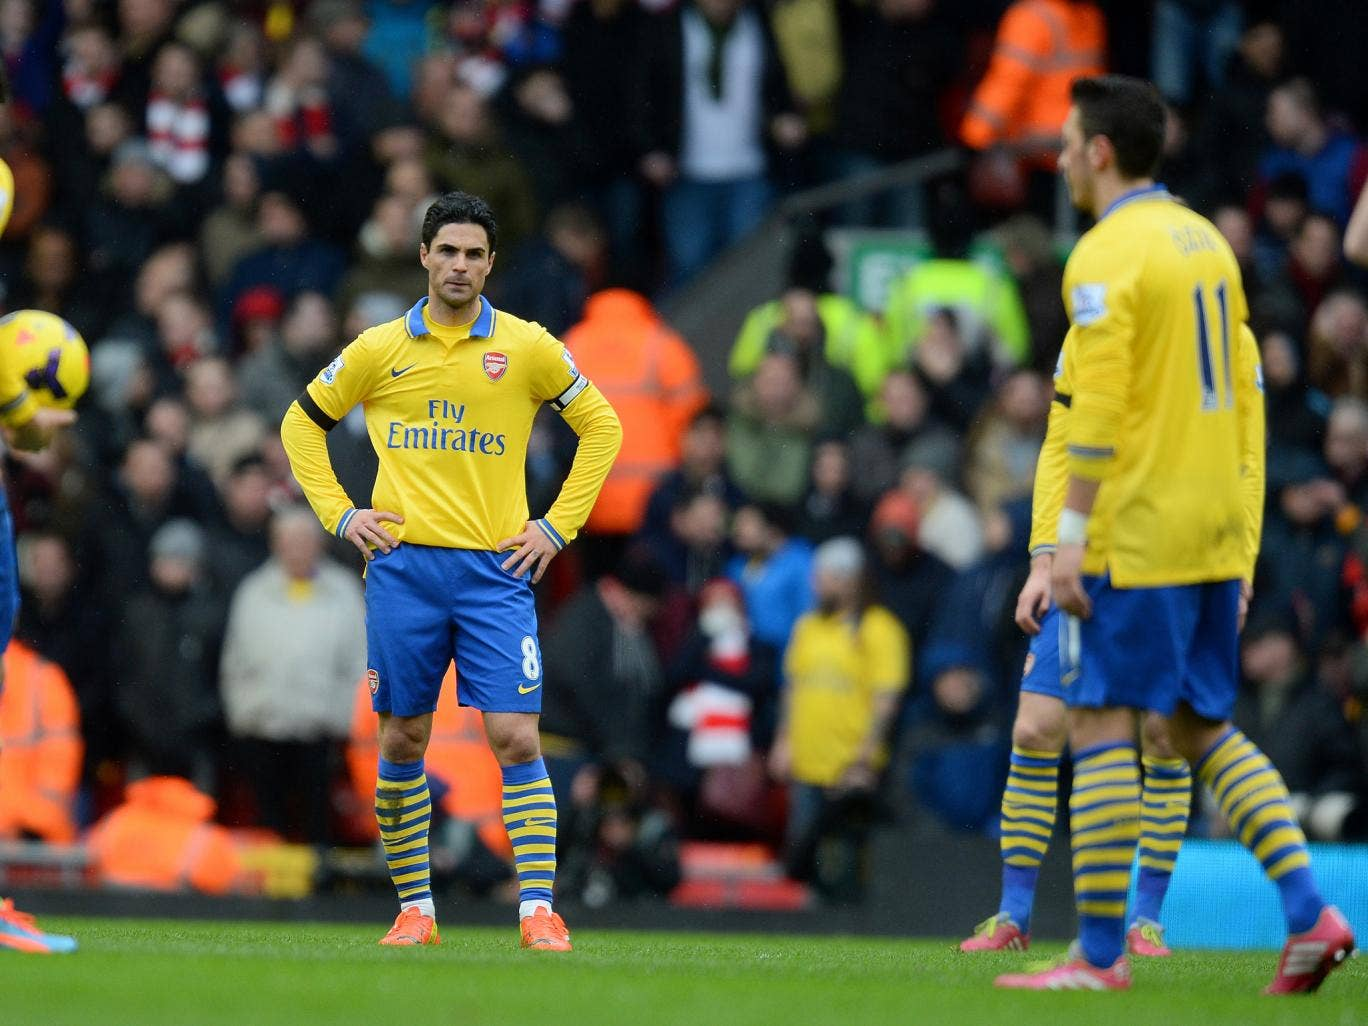 Mikel Arteta could be allowed to leave Arsenal in the next few weeks